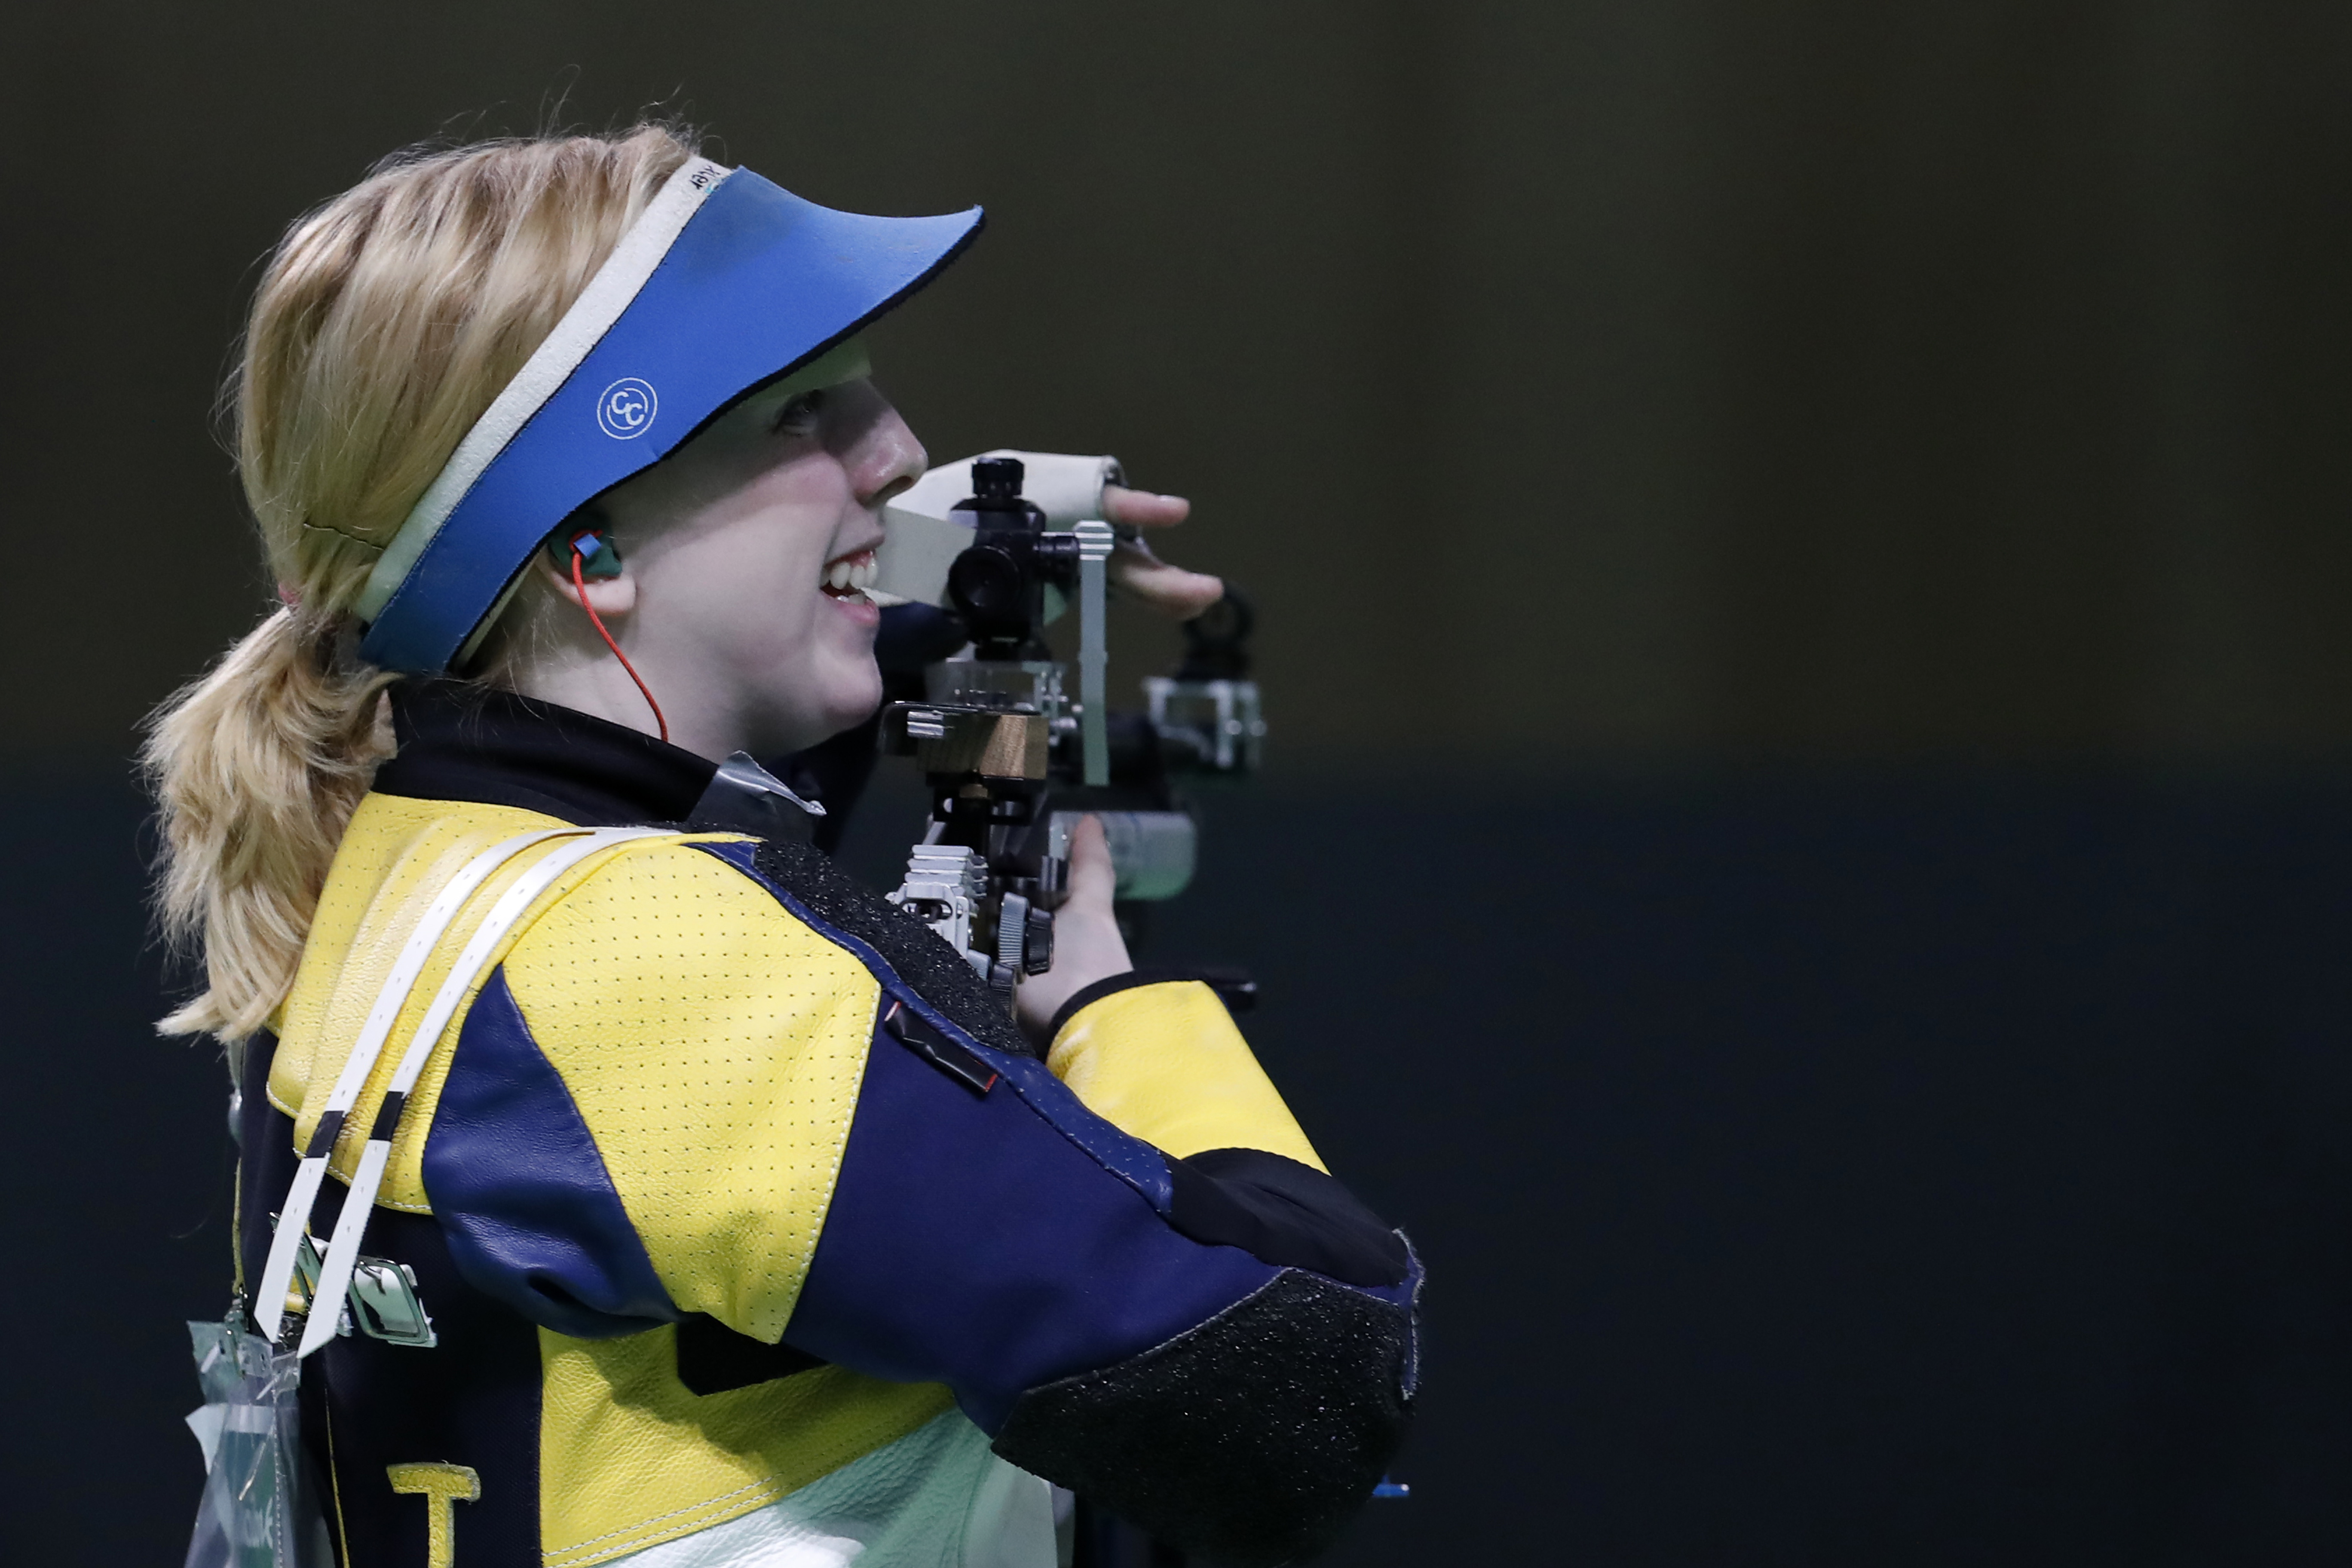 Virginia Thrasher of the United States smiles winning a shootout to secure the gold medal in the Women's 10m Air Rifle event at Olympic Shooting Center at the 2016 Summer Olympics in Rio de Janeiro, Brazil, Saturday, Aug. 6, 2016.